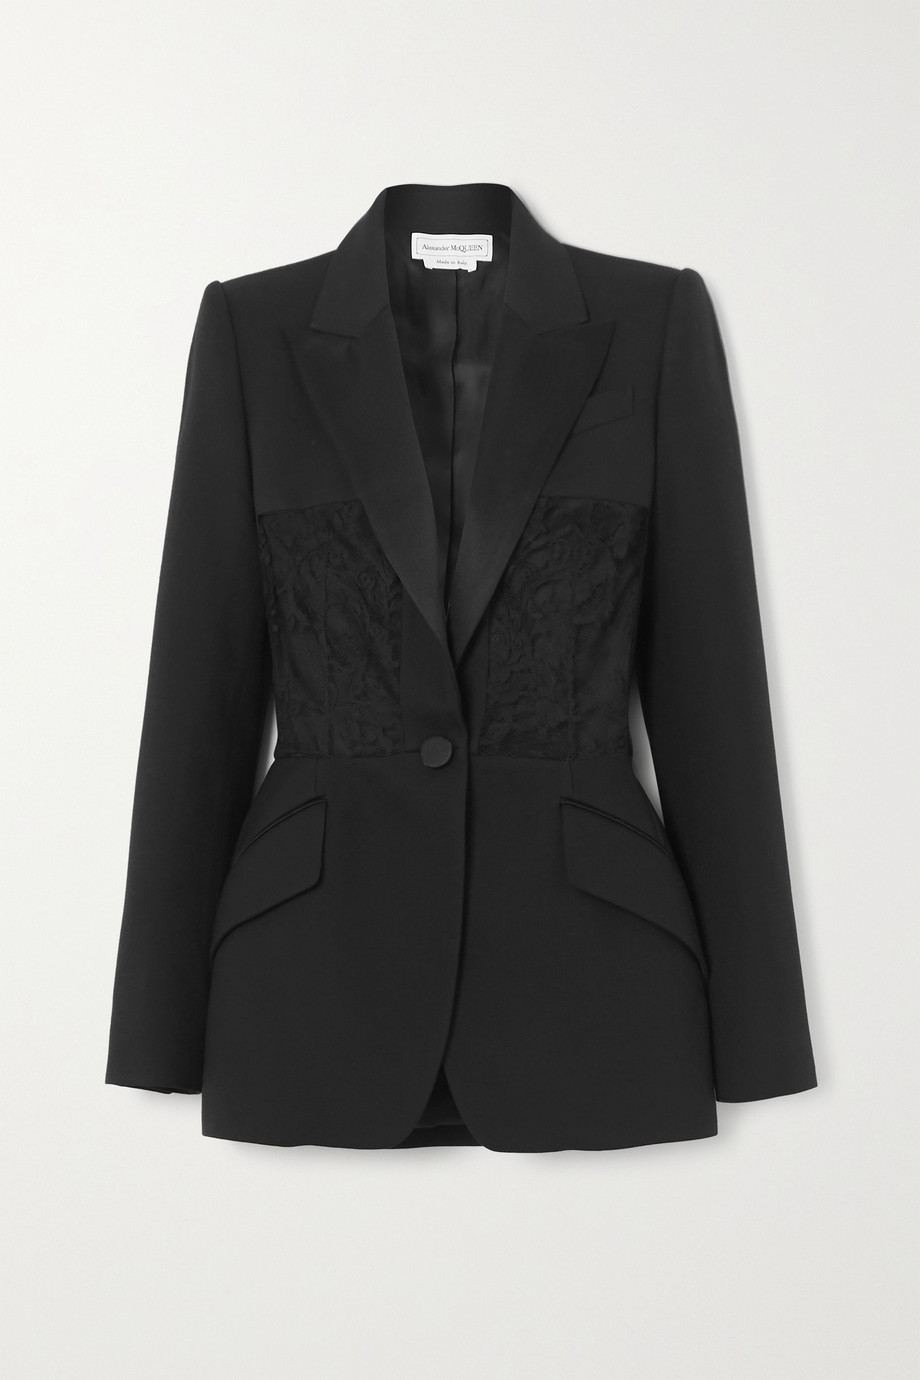 Alexander McQueen Satin-trimmed crepe and lace blazer